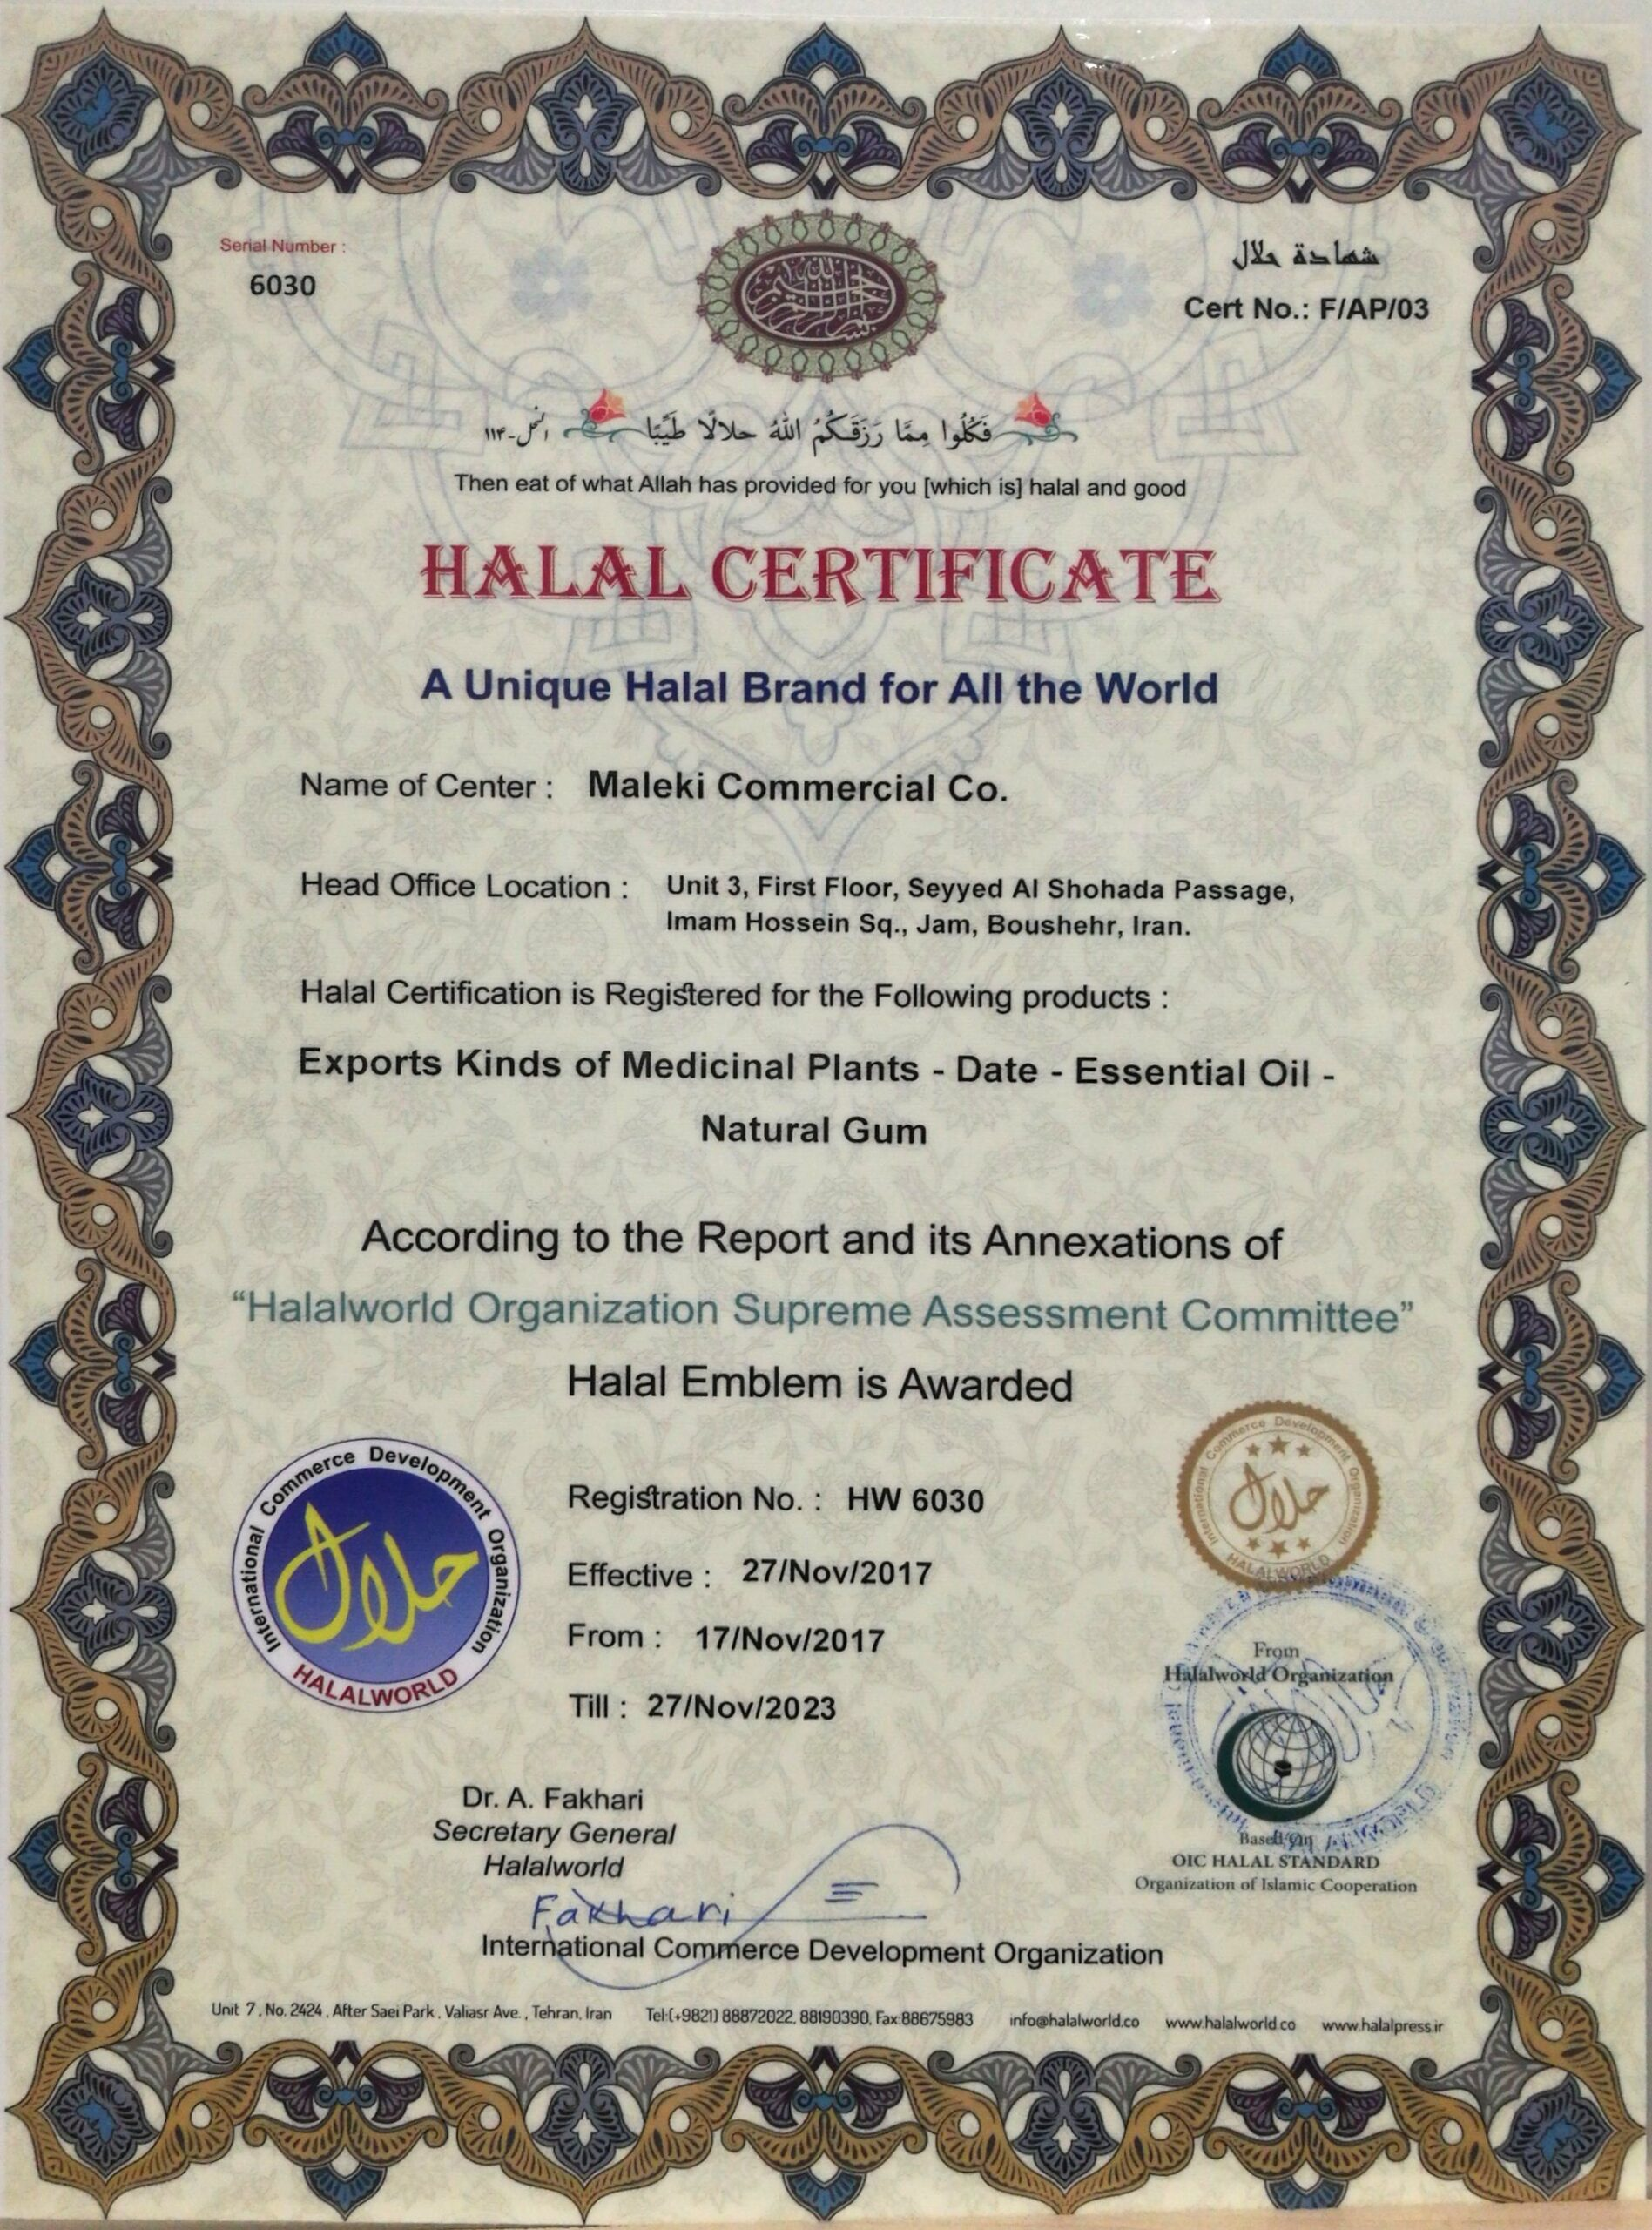 ISO Halal Certificate Export of Herb essential oil - Maleki Commercial Co.